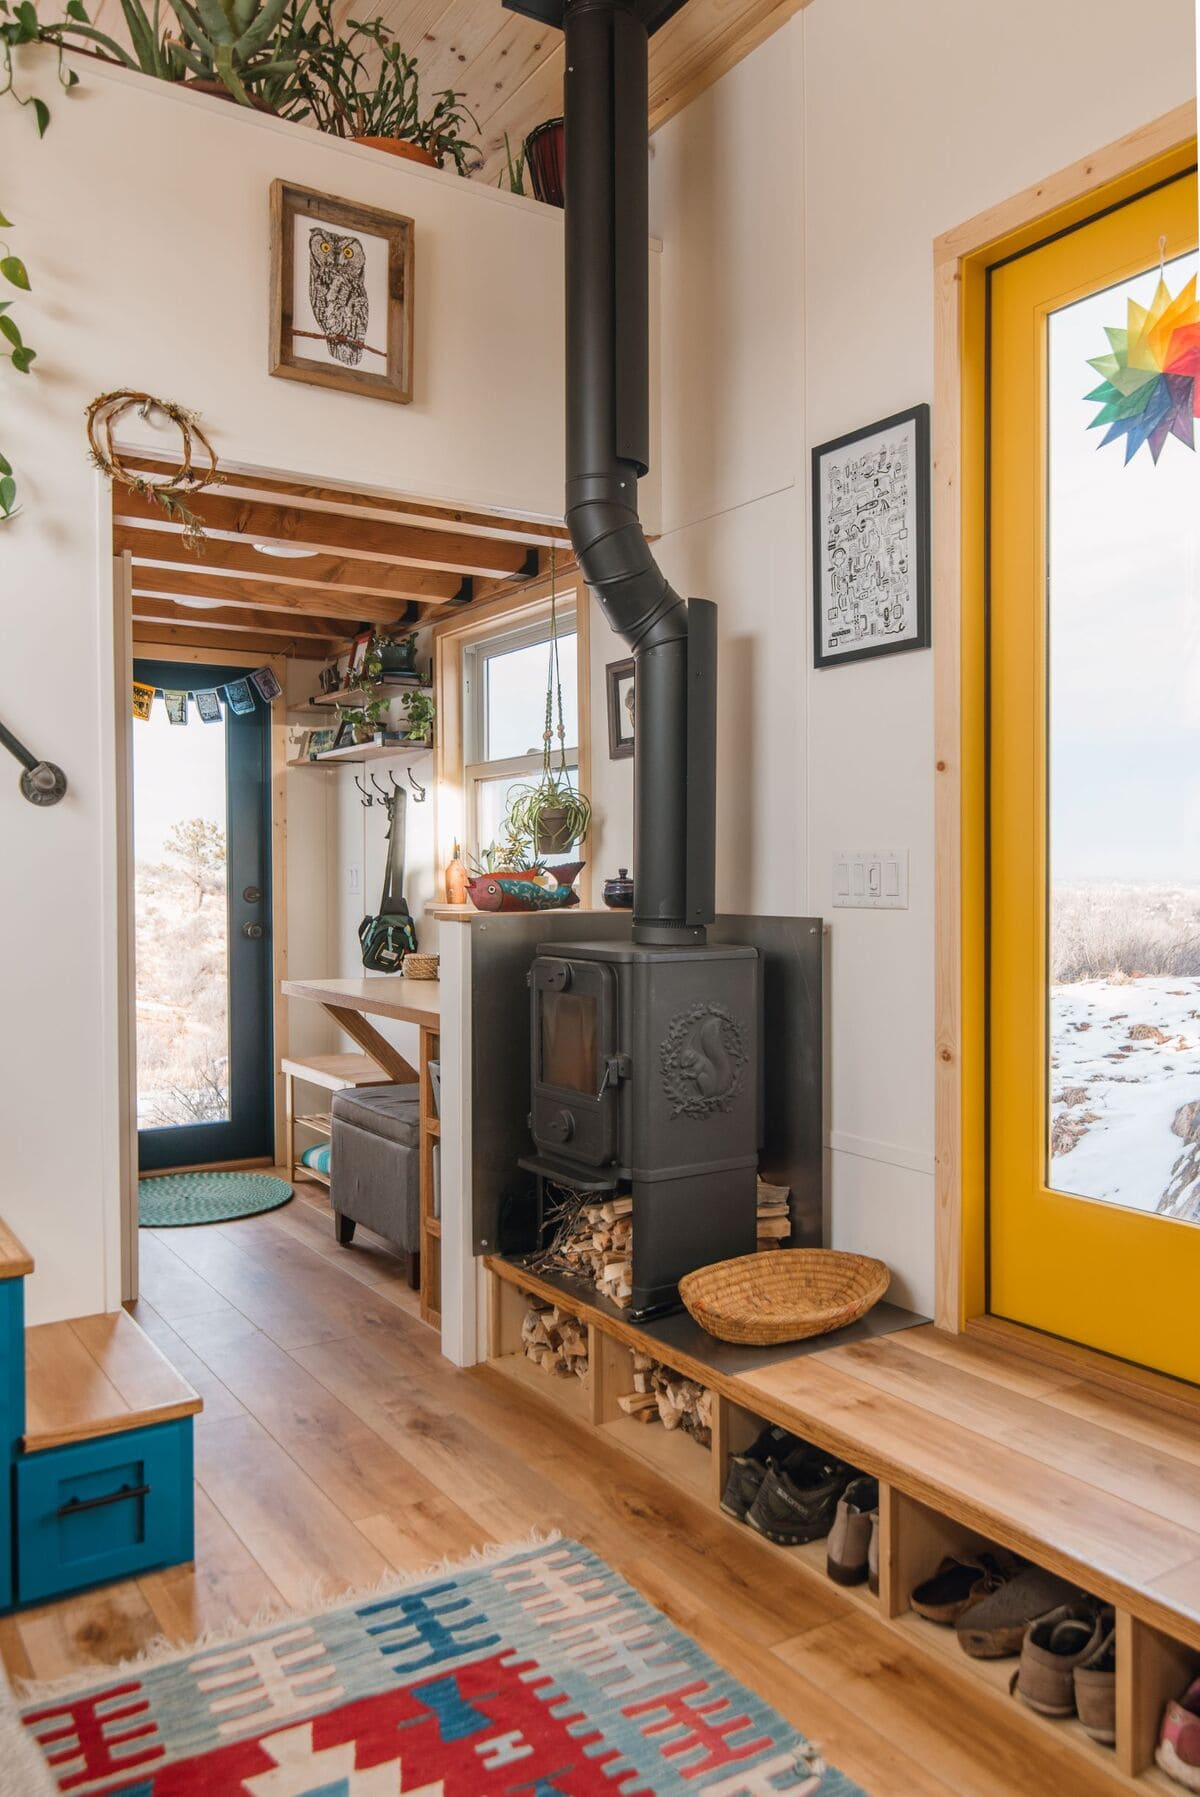 Ltiny house living Room Closeup Woodstove 1 - This luxurious tiny house does not hold back on function - it even has a mudroom